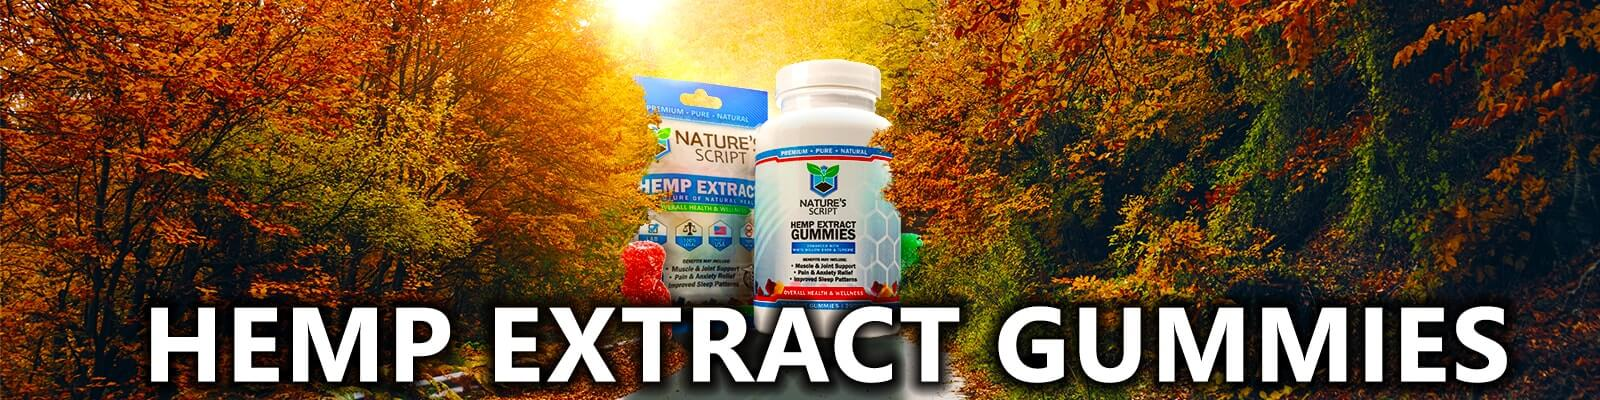 autumn forest of trees hemp extract gummies banner